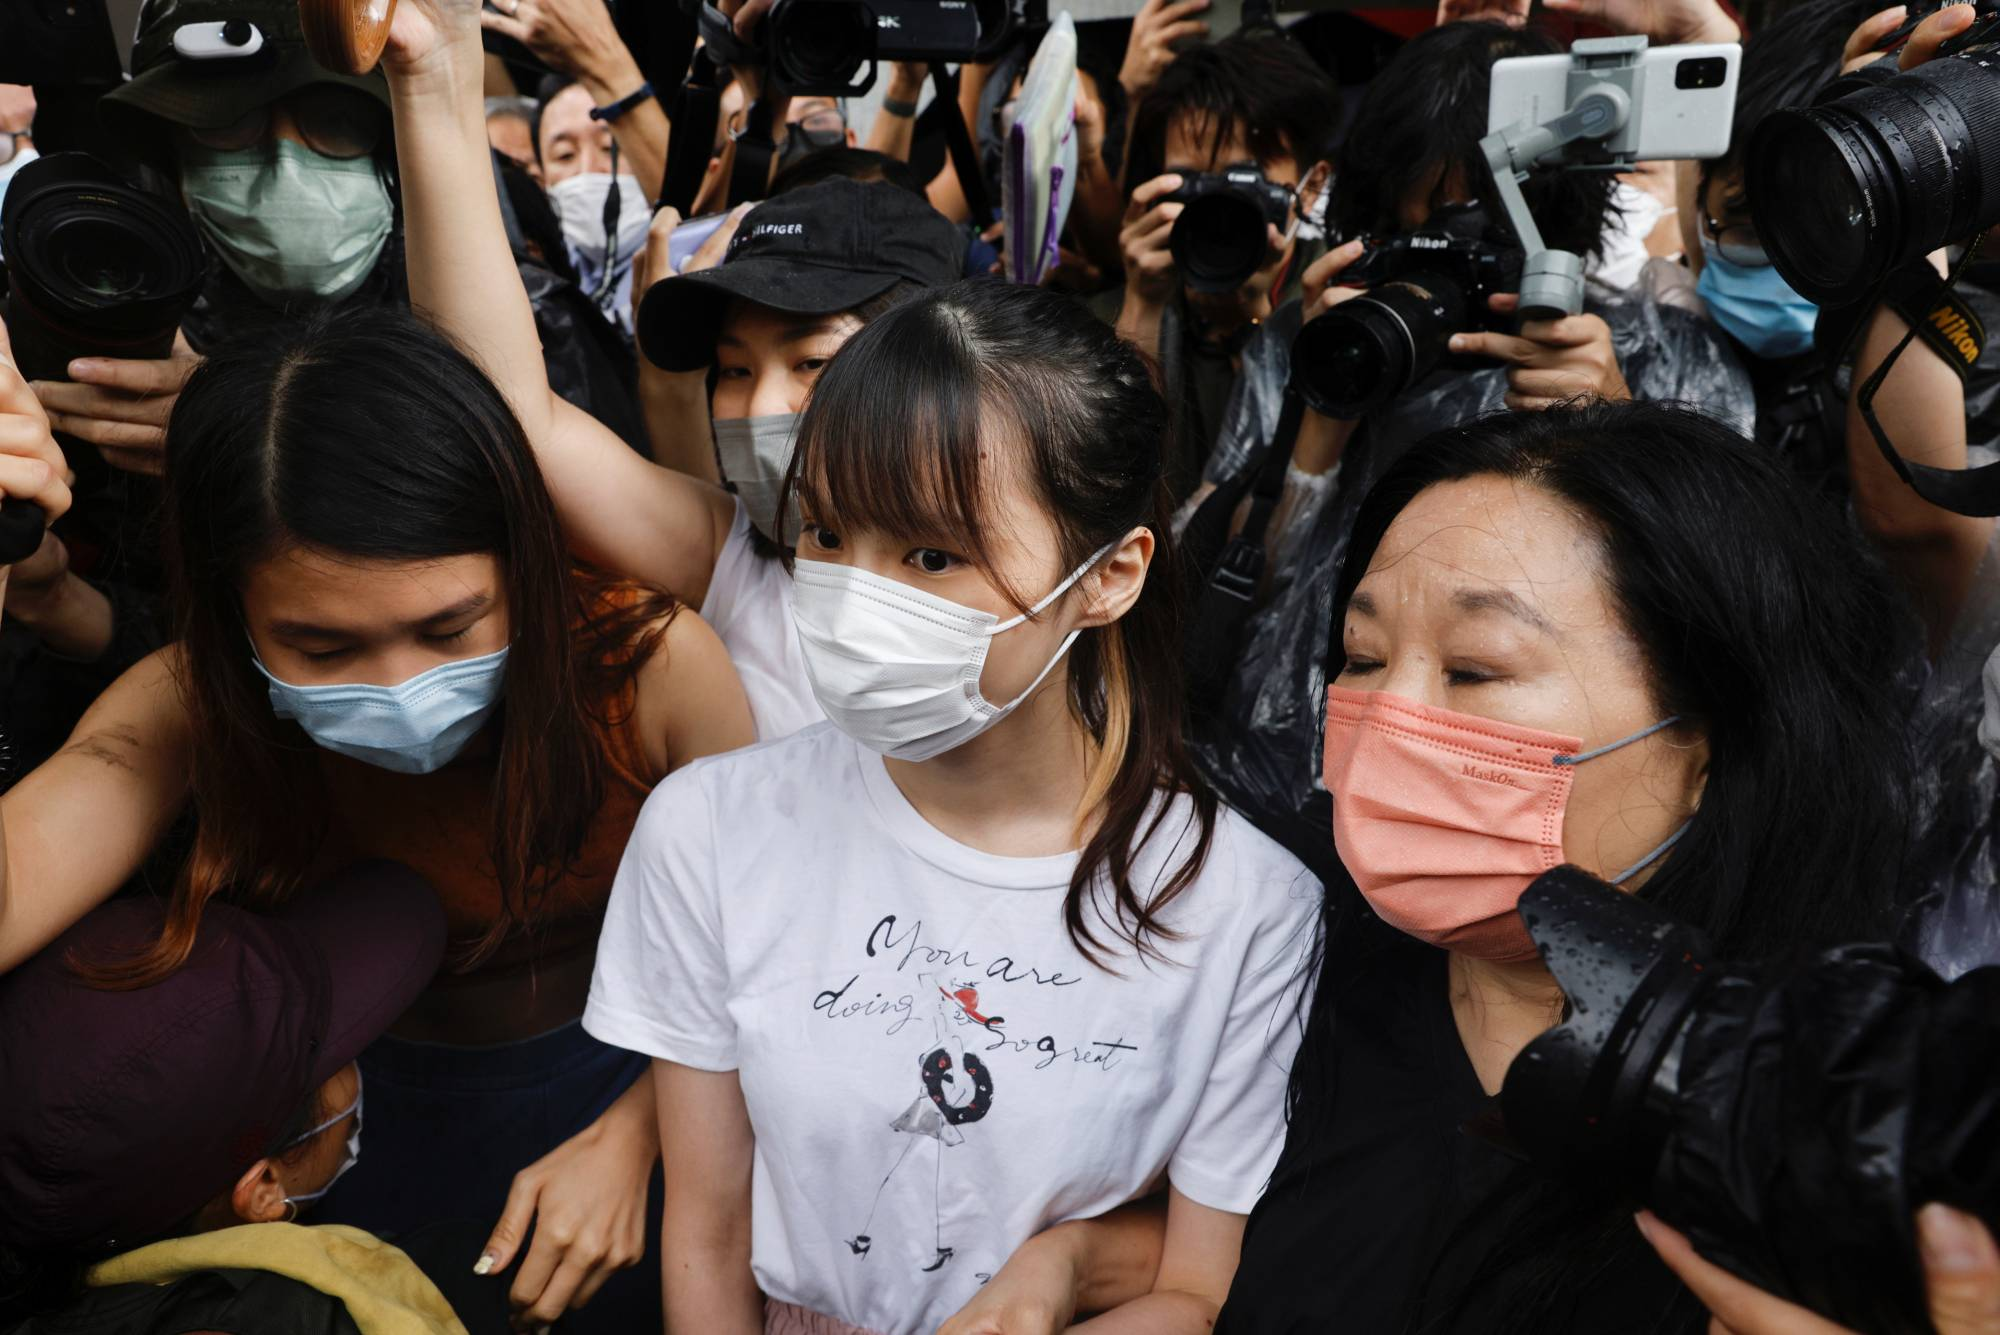 Pro-democracy activist Agnes Chow is released from prison Saturday after serving nearly seven months for her role in an unauthorized assembly during Hong Kong's 2019 anti-government protests.   REUTERS